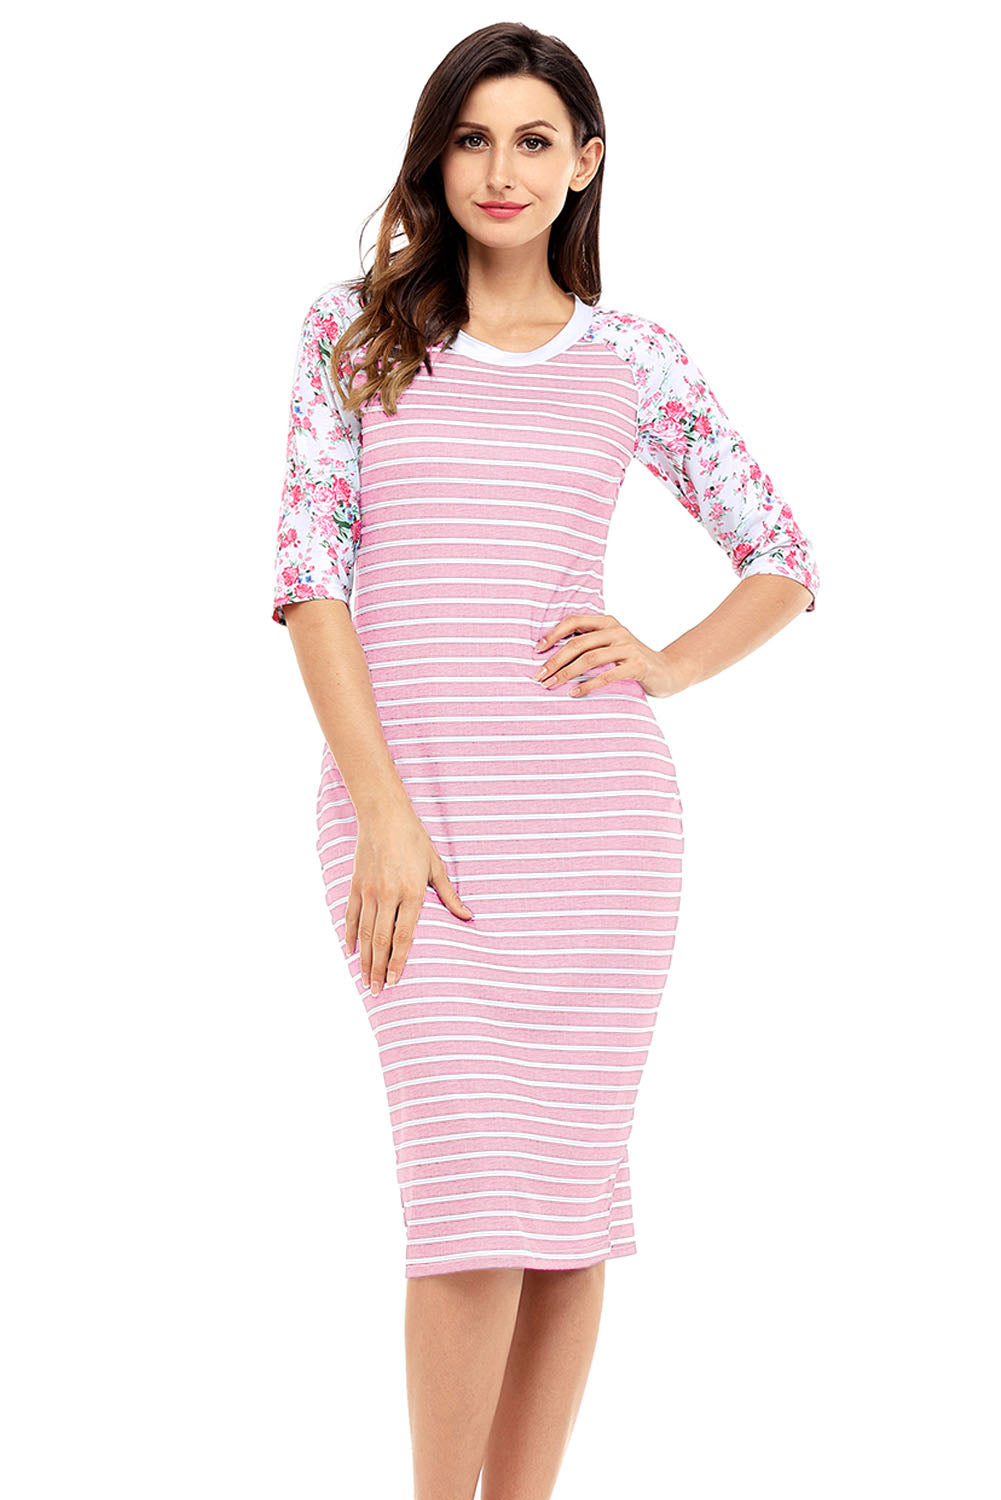 Chicloth Pink White Stripe Floral Sleeve Midi Dress - S / Pink White